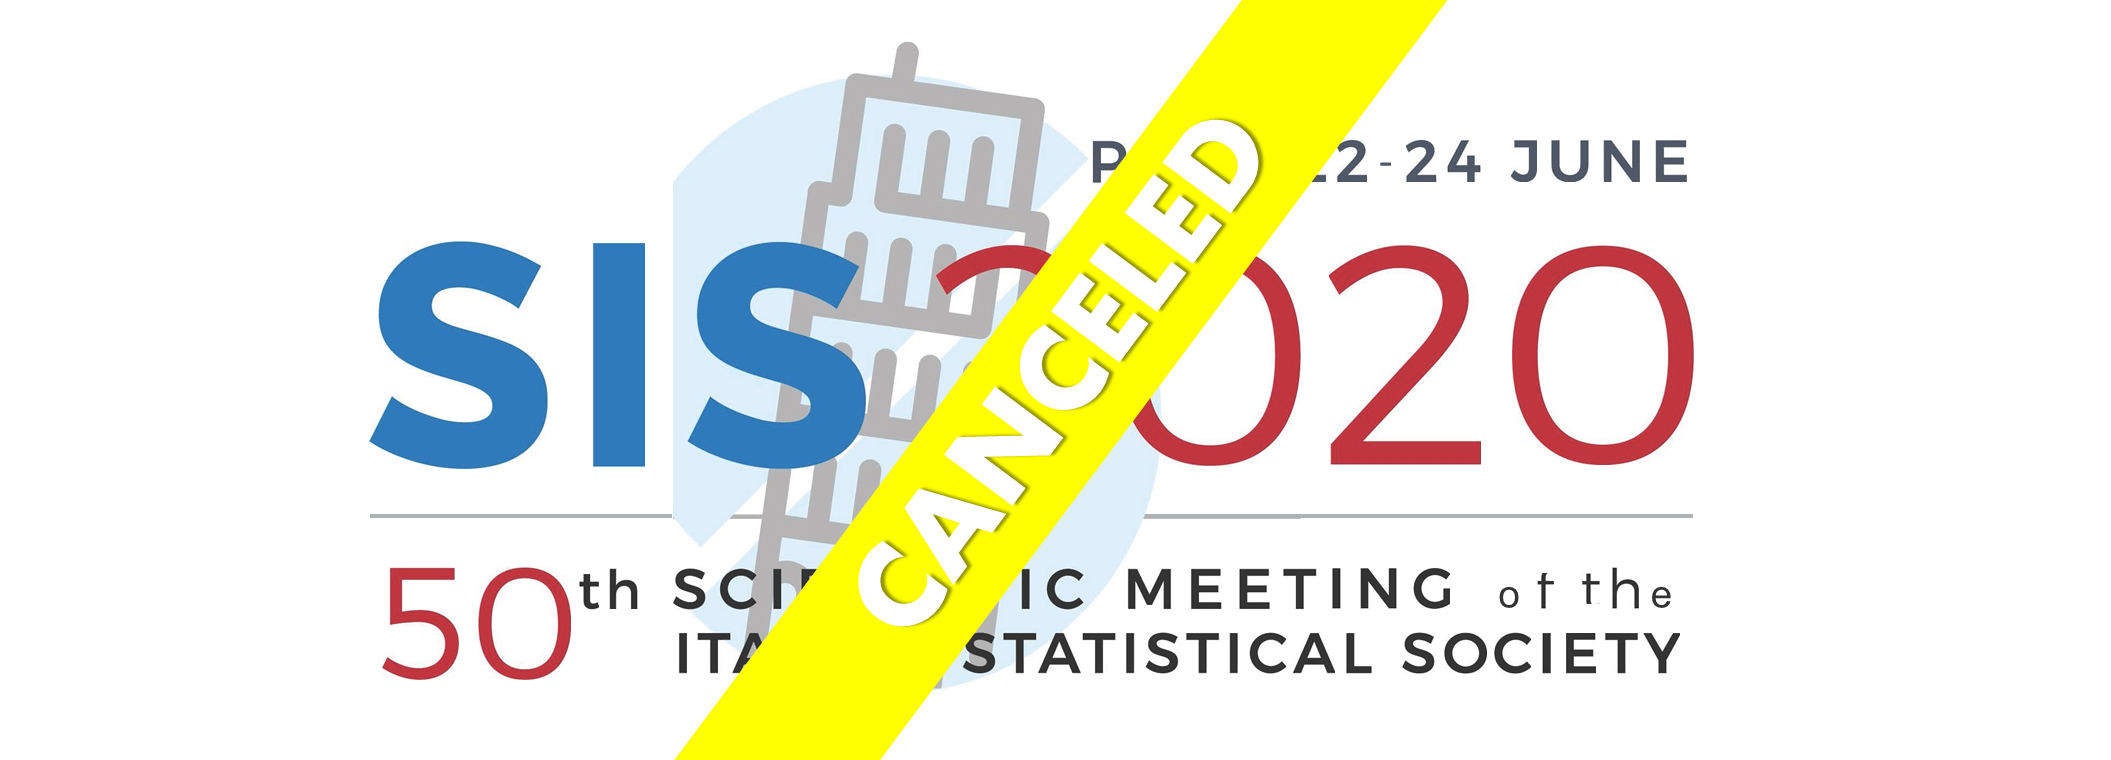 SIS 2020 - 49th Scientific meeting of the Italian Statistical Society